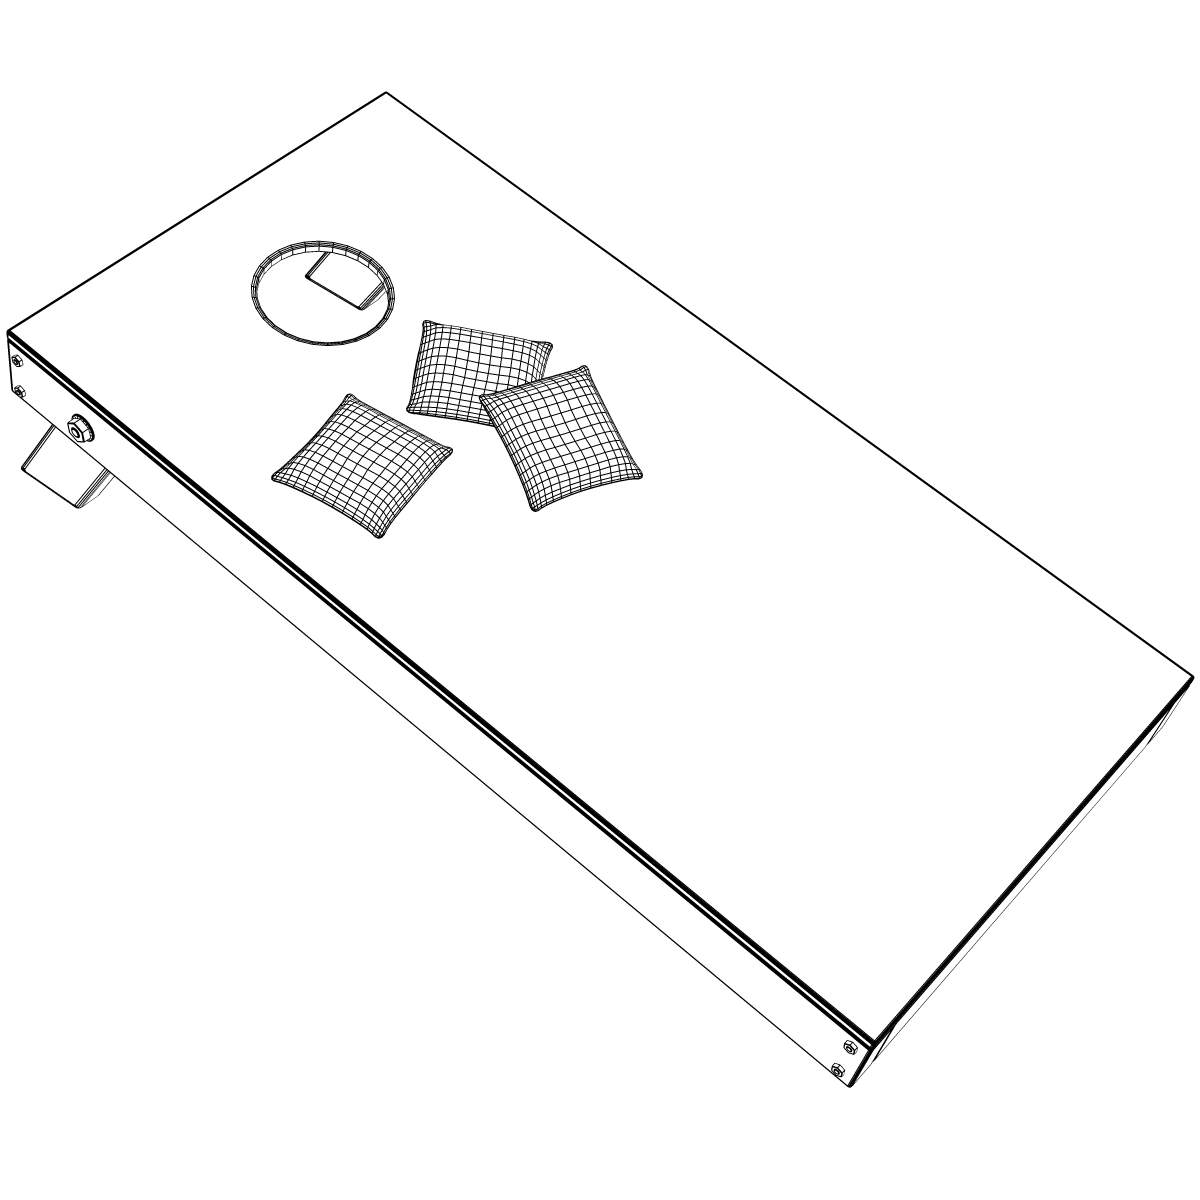 Cornhole clipart. Game d cgtrader model